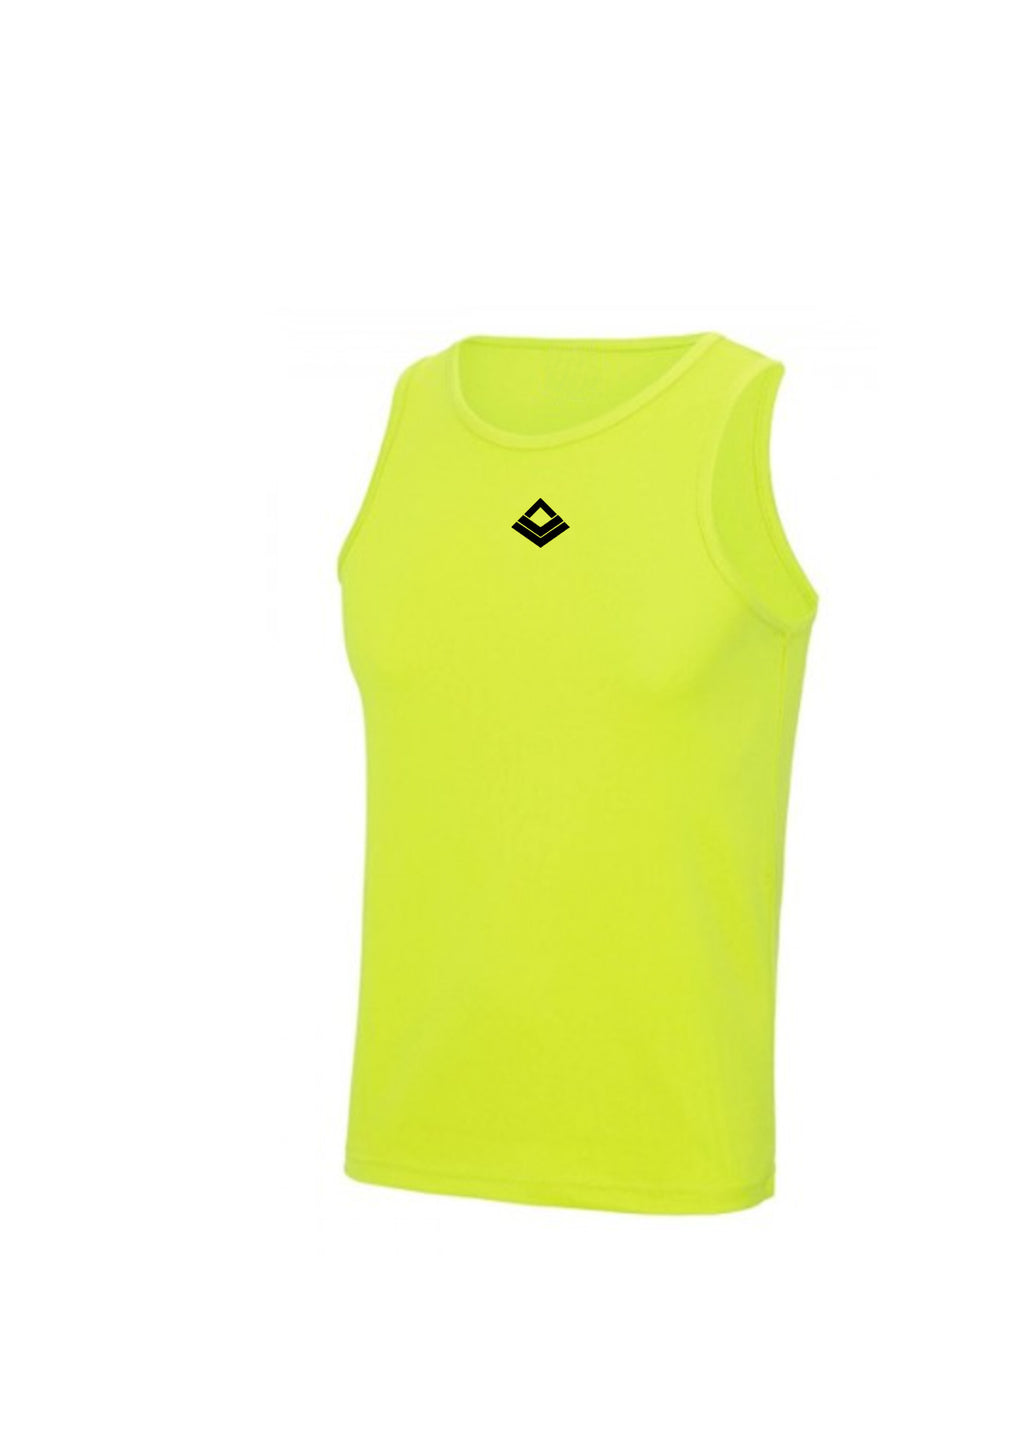 SWAGGERLICIOUS COOL TRAINING TANK TOP-ELECTRIC YELLOW - swaggerlicious-clothing.com